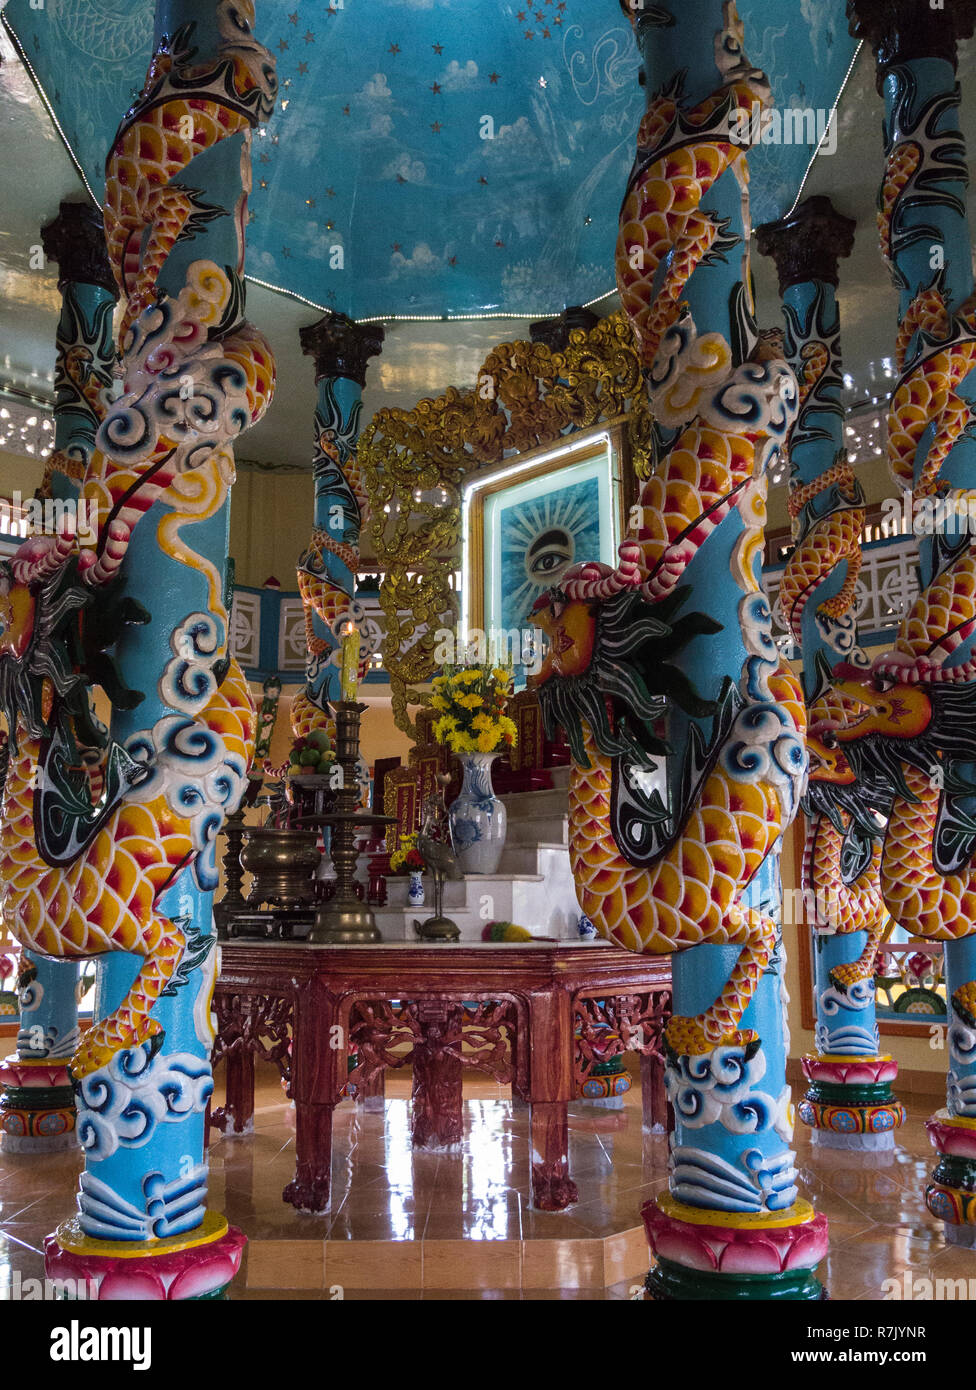 Decorated pillars in Cao Dai Temple in Cai Be symbolise local unique religion indigenous to Vietnam very ornate temple Asia - Stock Image